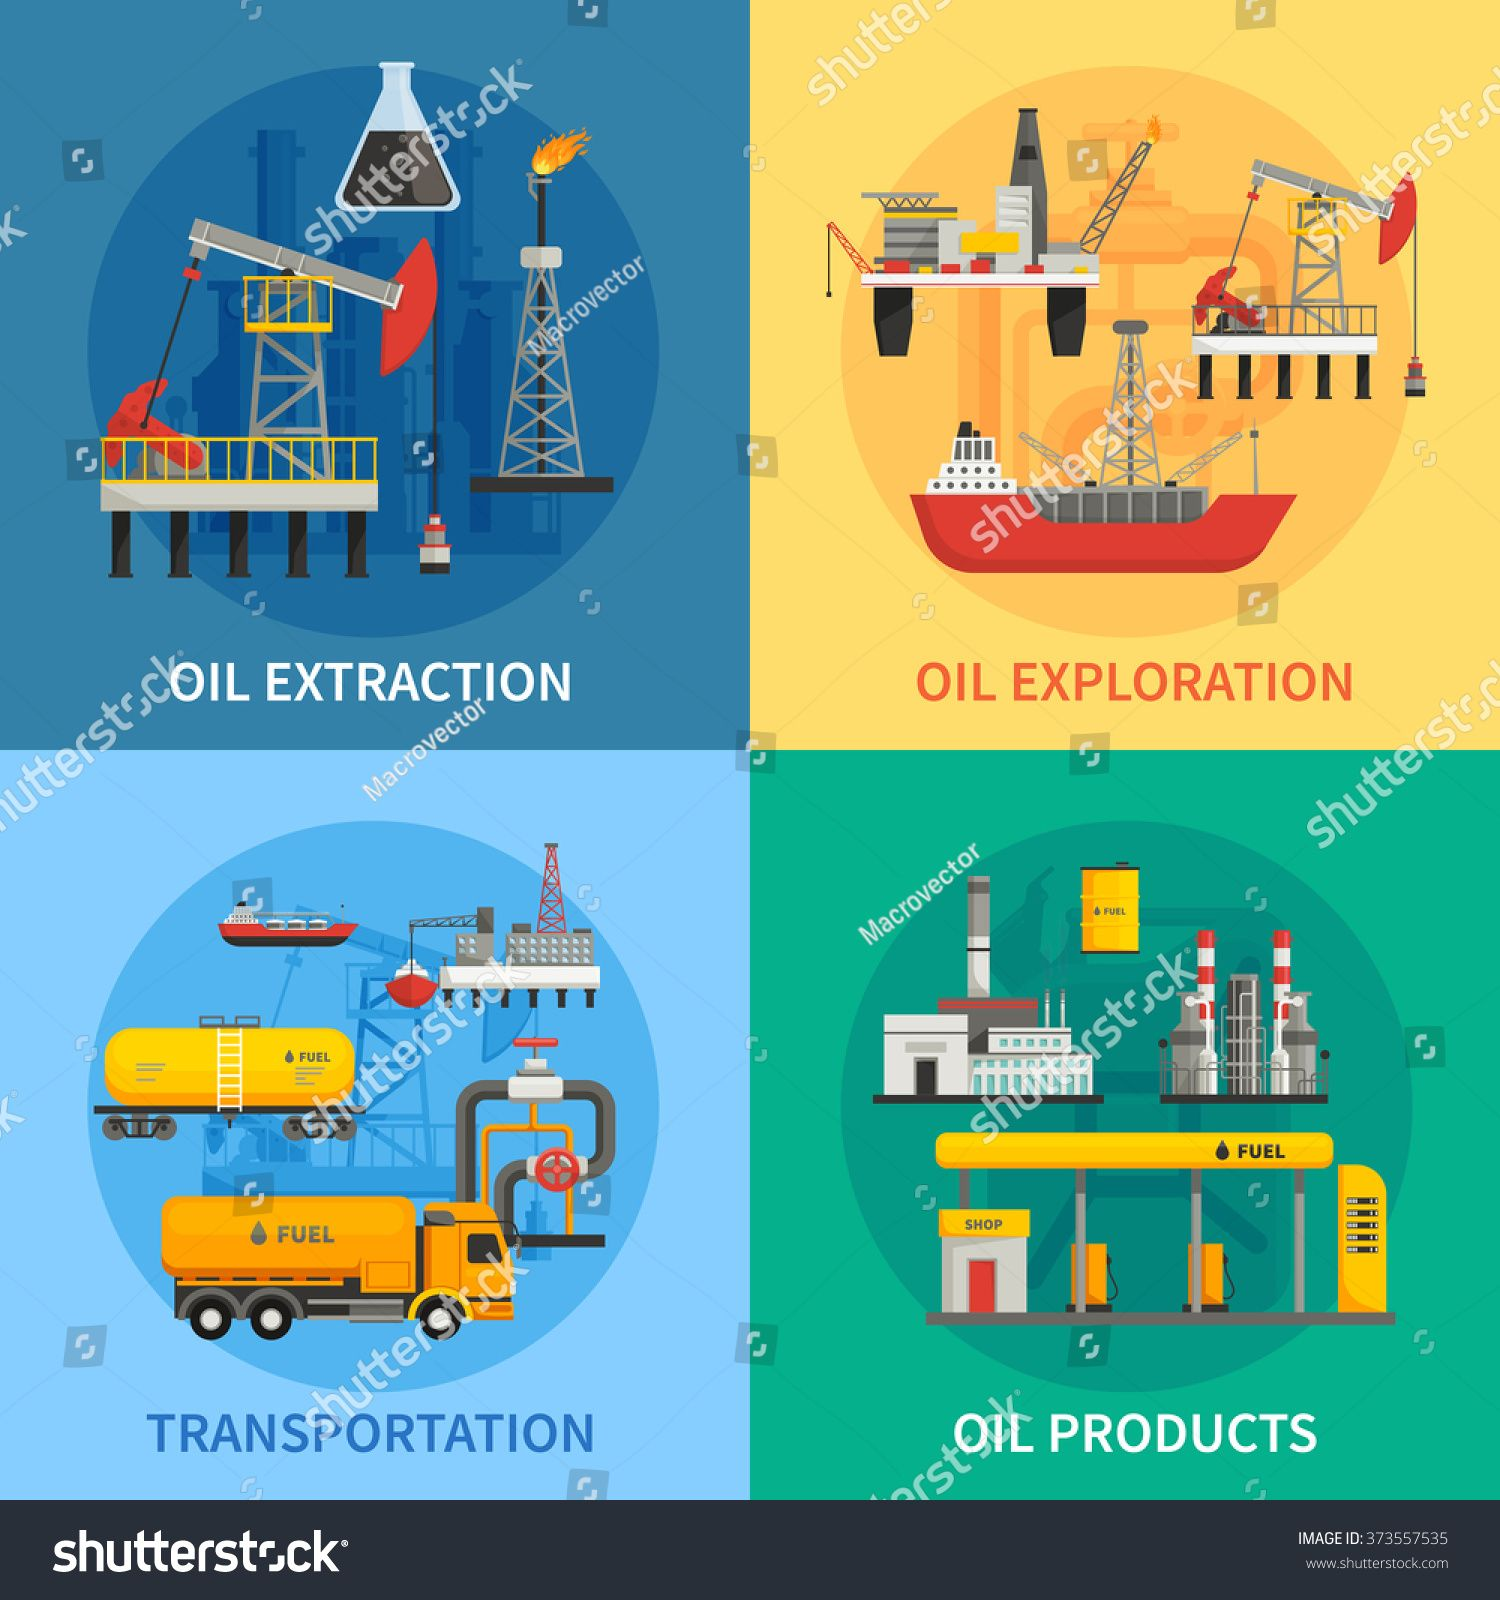 Flat 2x2 images presenting oil petrol industry oil